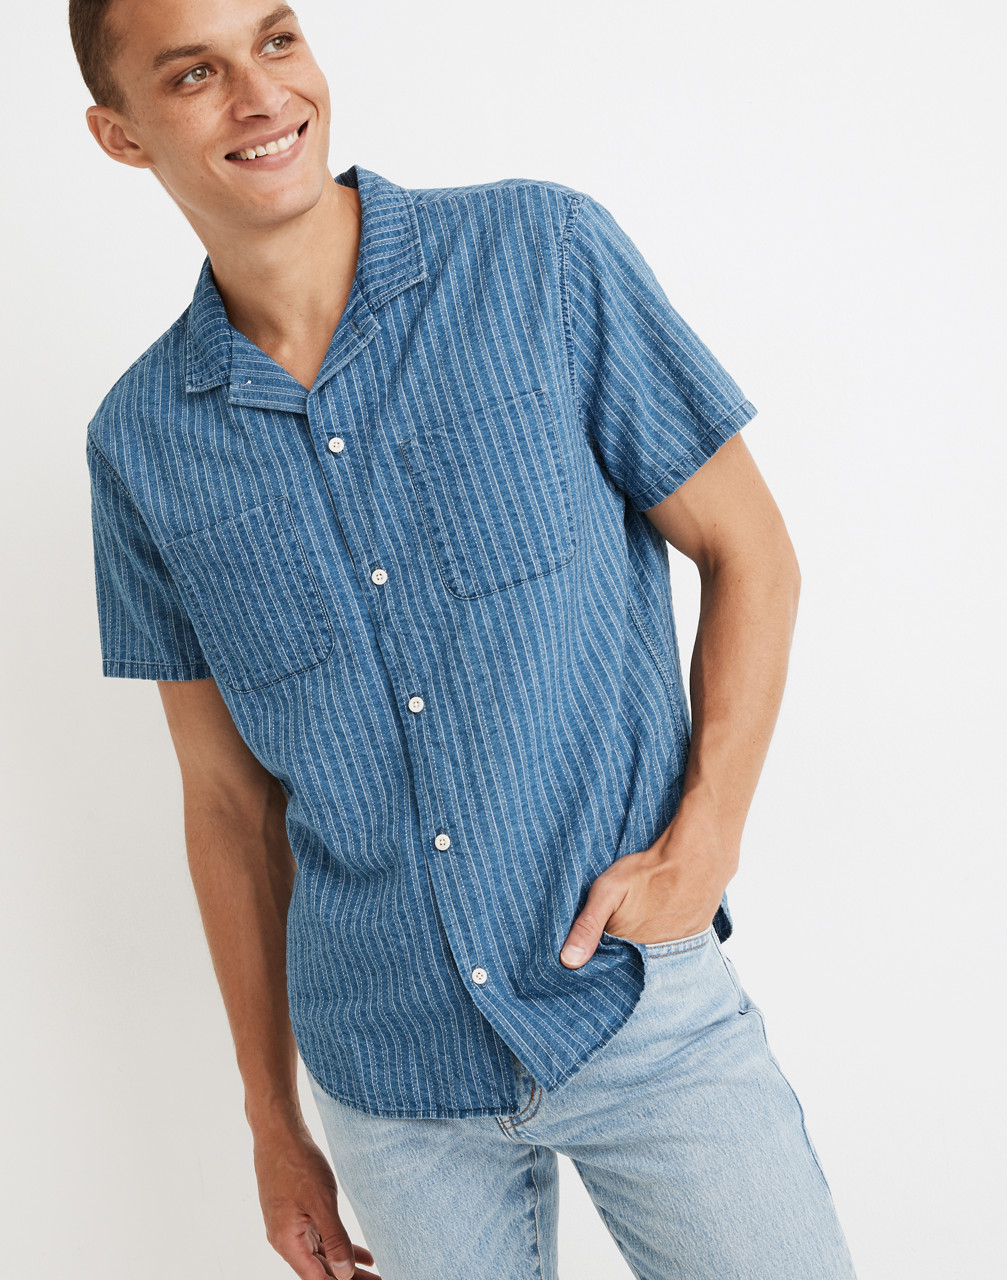 Men's Vintage Workwear Inspired Clothing Indigo Easy Camp Shirt in Textured Stripe $54.99 AT vintagedancer.com